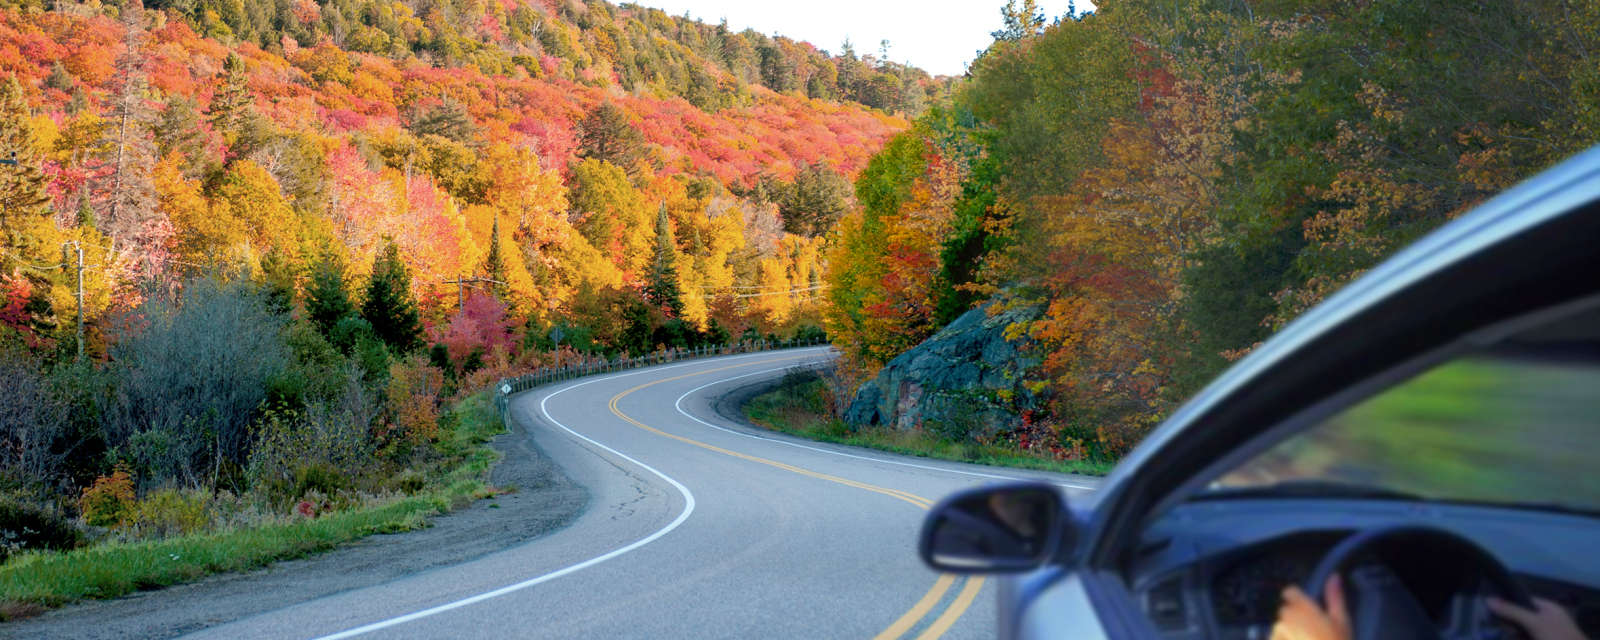 car driving along a winding road with colourful trees in background